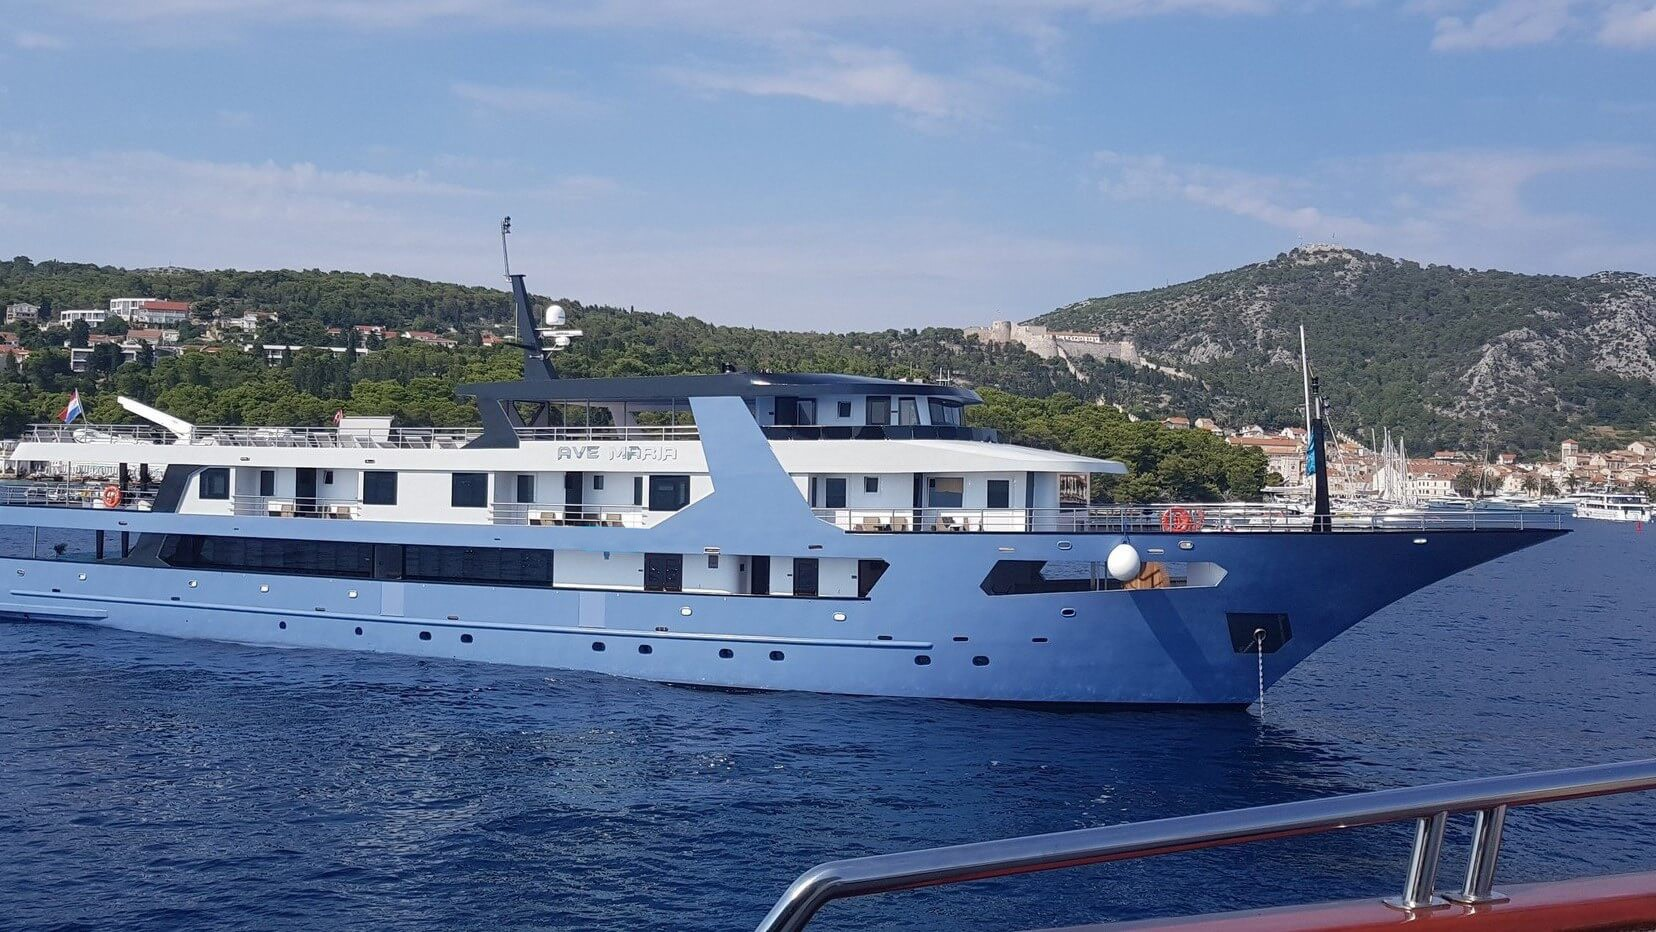 Ave Maria | Croatia Holidays Croatia Cruise